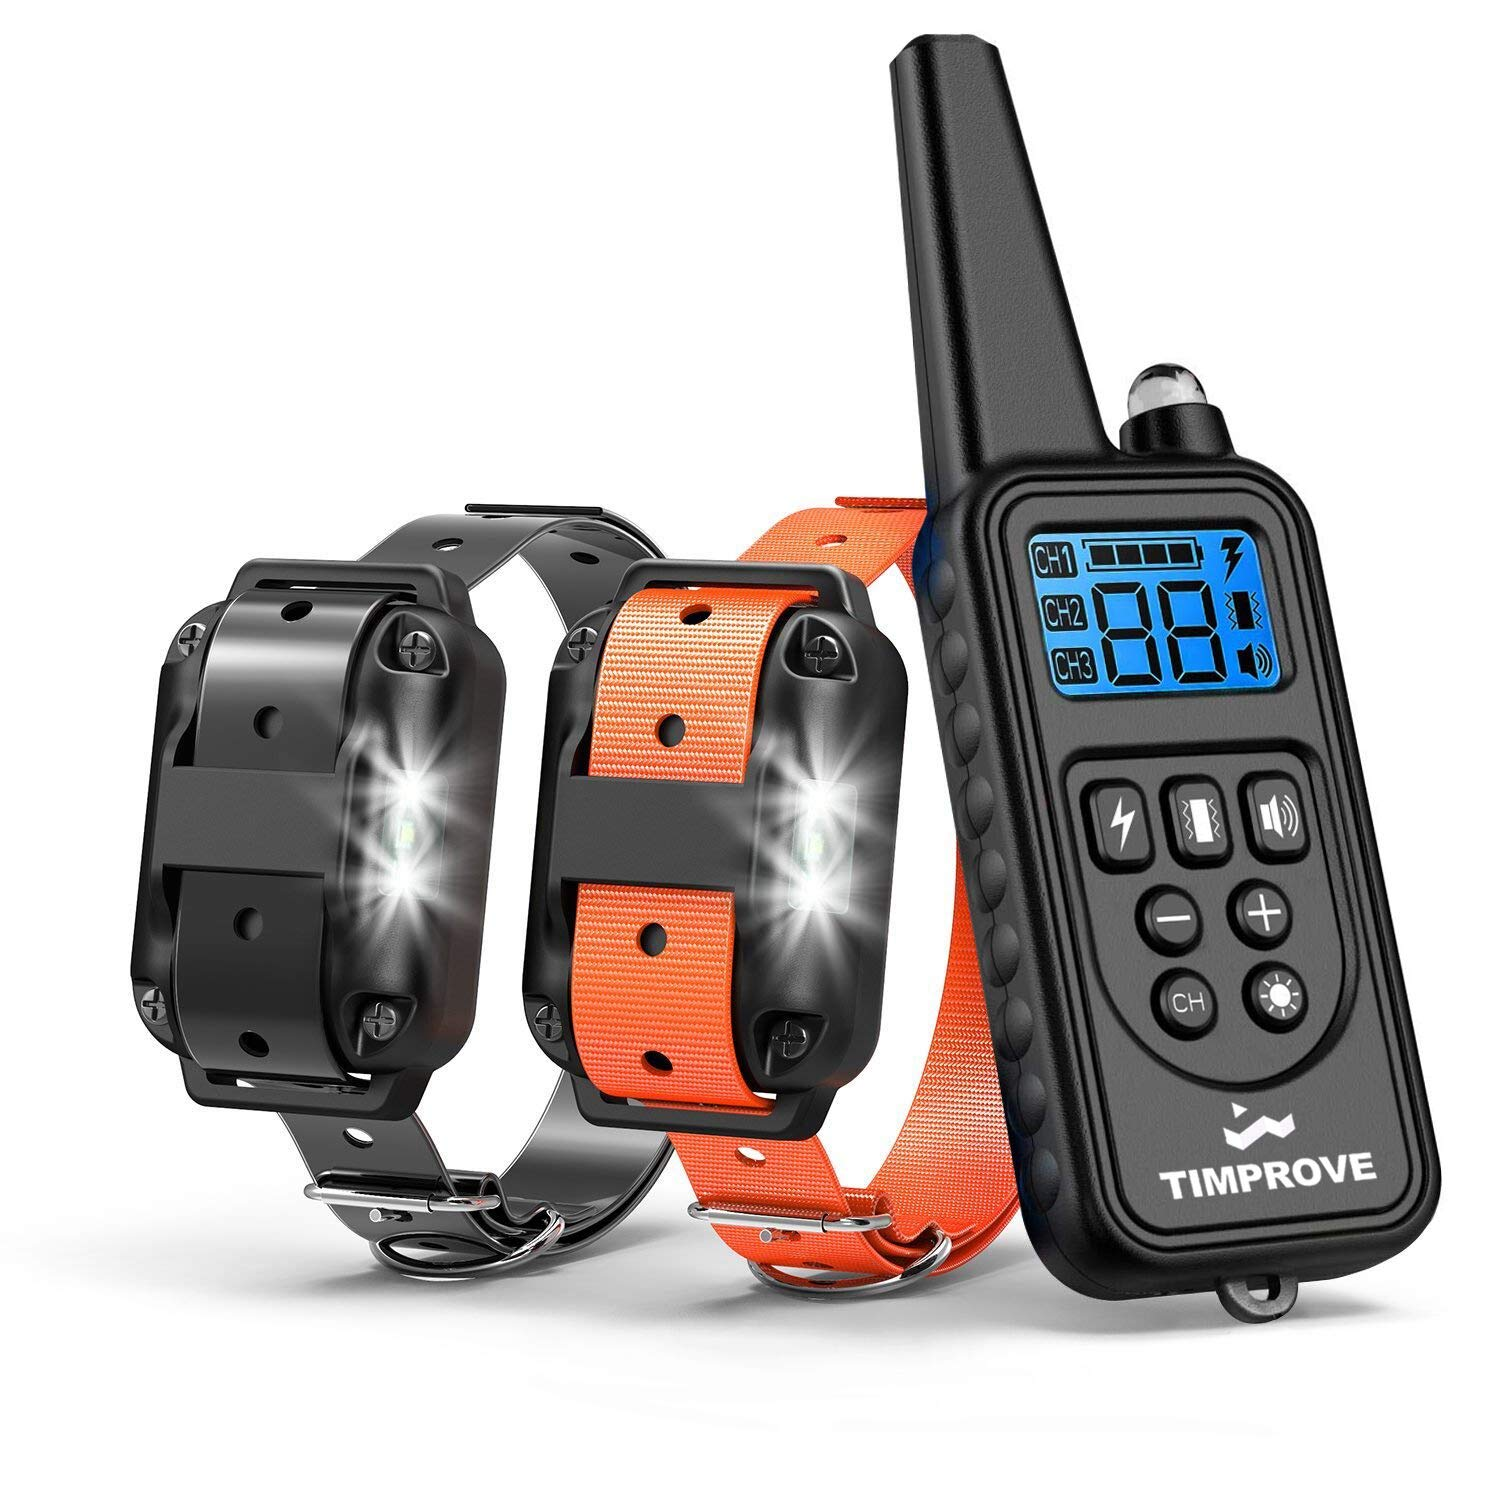 For 2 Dogs TIMPROVE 330 Yards Range Remote Dual Dog Training Collar, Rechargeable and IPX7 Rainproof Dog Shock Collar with Beep, Vibration and Shock, Electric Dog Collar for Puppy, Small, Medium and Large Dogs, 2 Electronic Collar Receivers Included